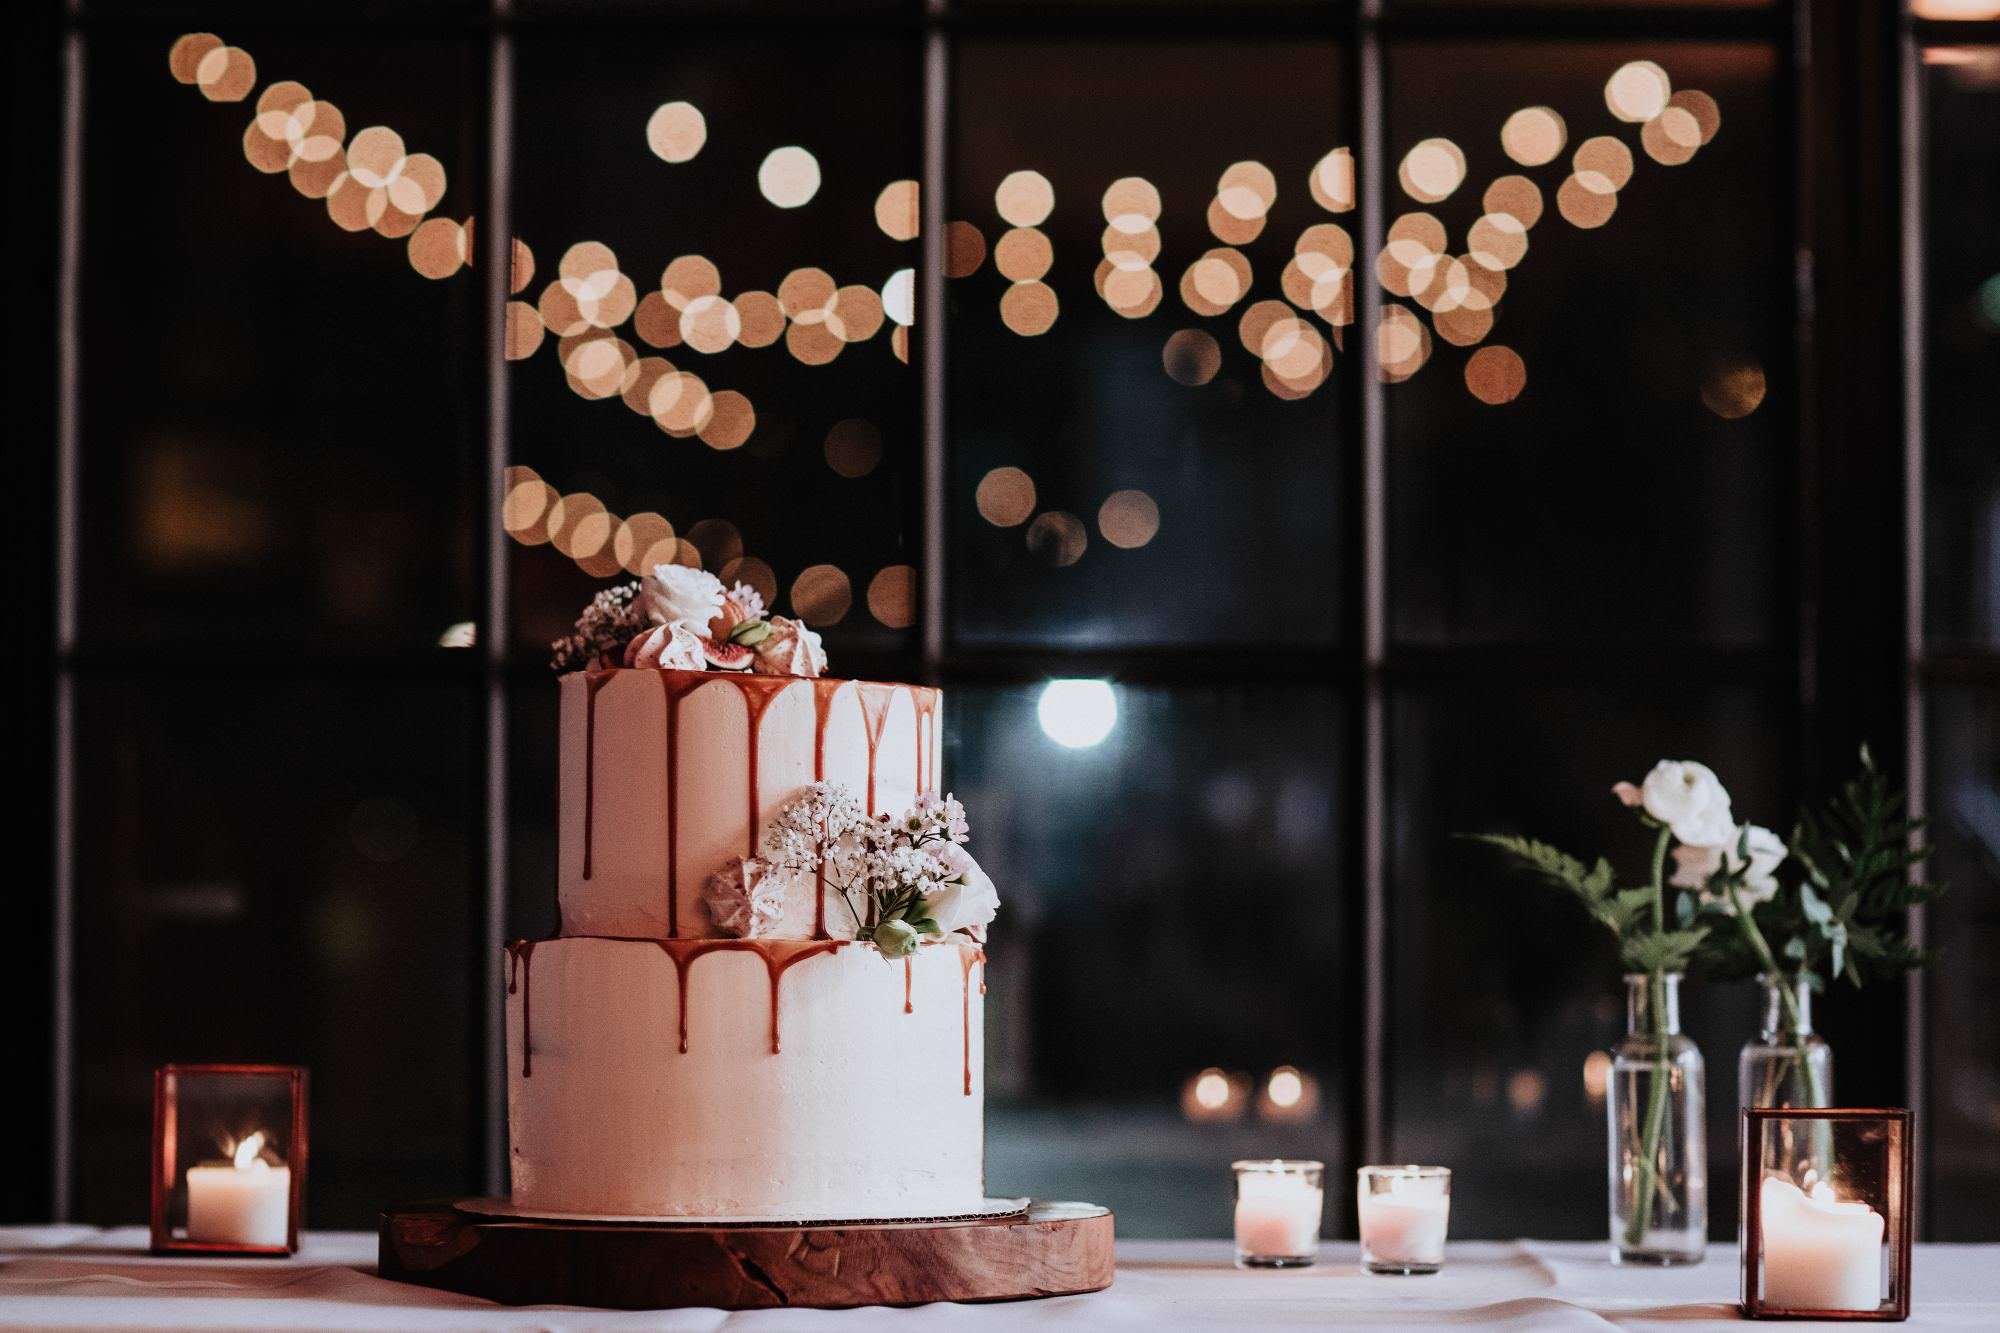 Cake by Gateu Bourgeoys Bokeh String Bulb Lights in background